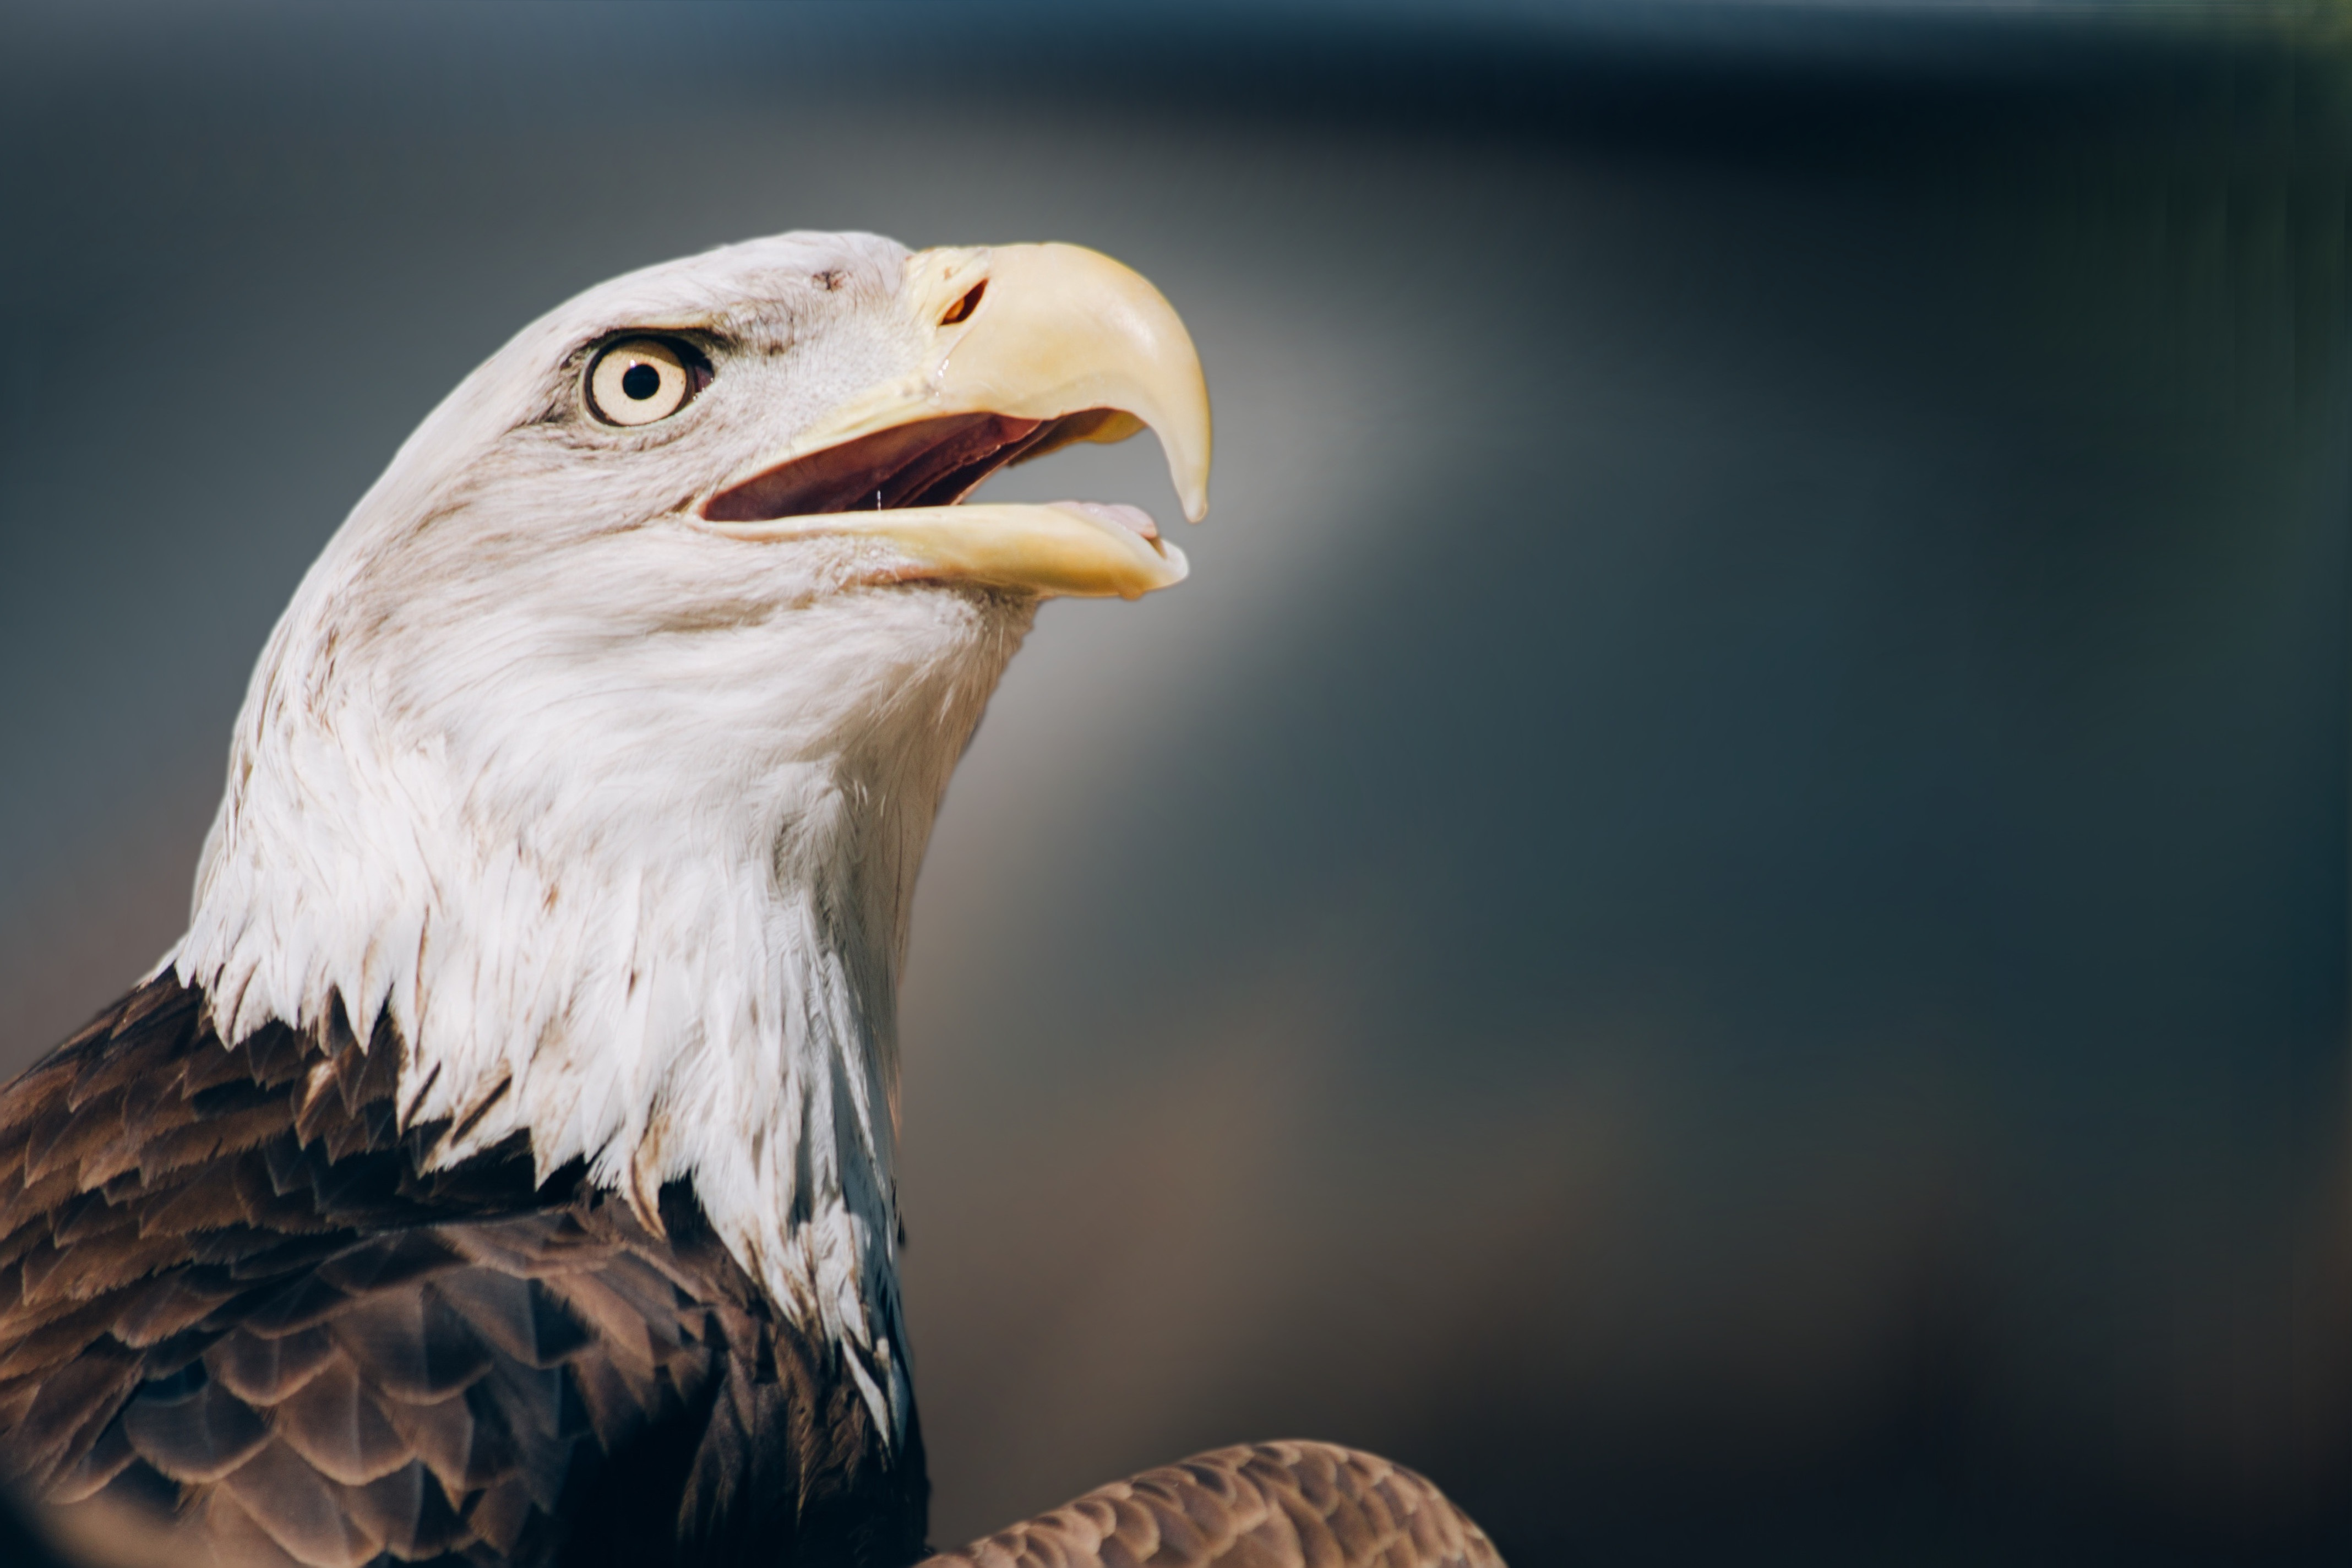 63093 download wallpaper Animals, Eagle, Bald Eagle, White-Headed Eagle, Head, Beak screensavers and pictures for free